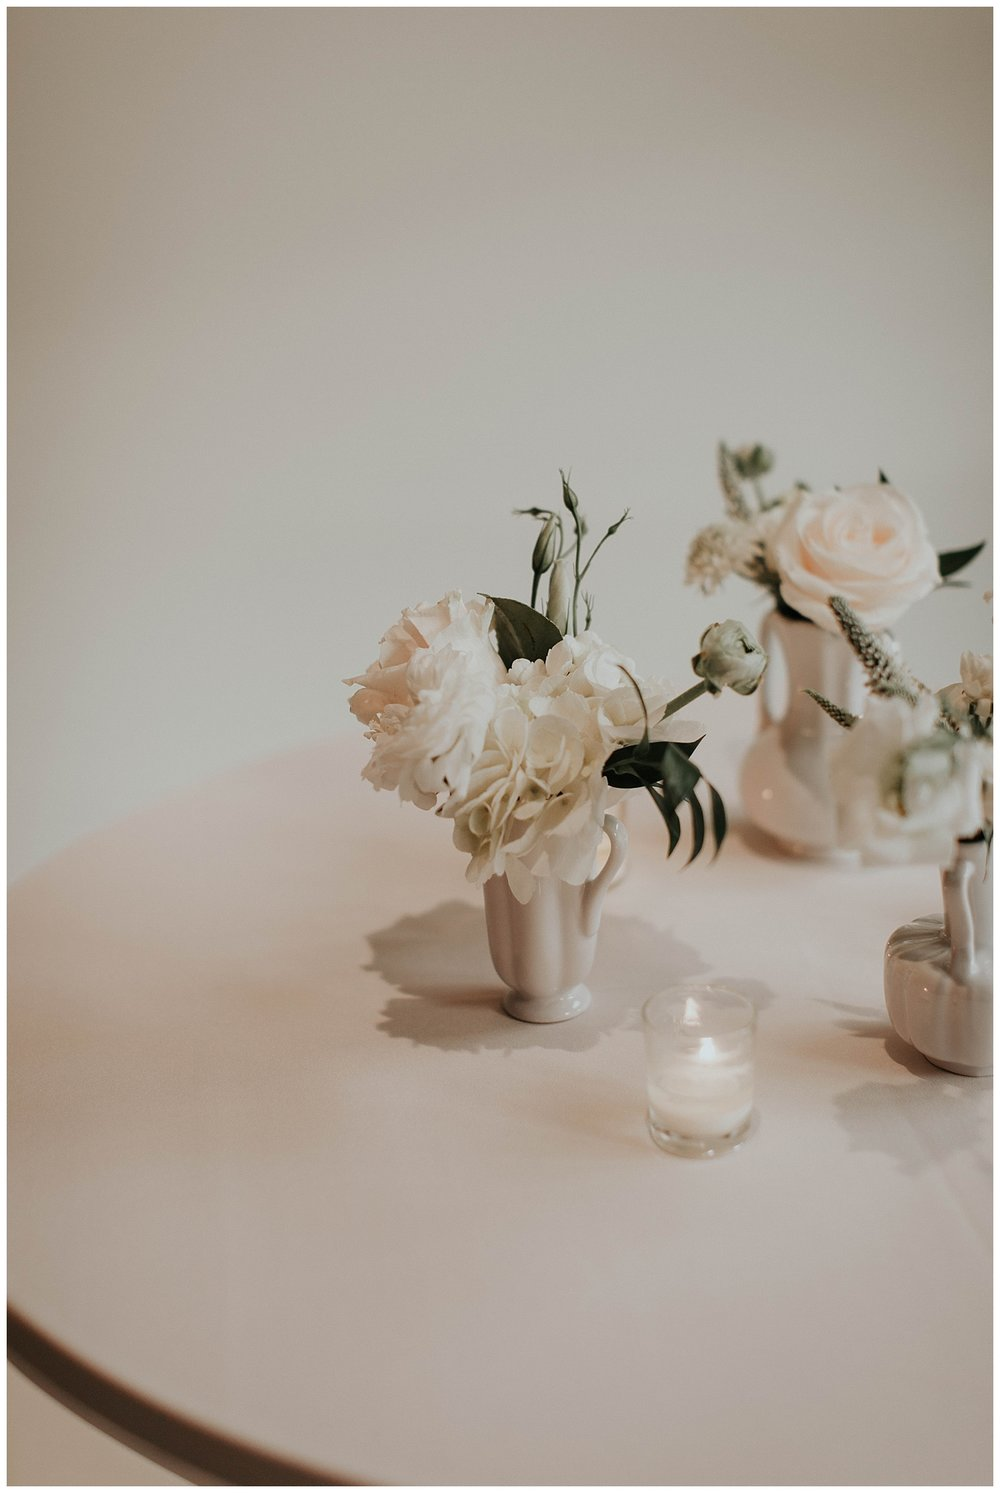 Madalynn Young Photography | Sarah Catherine + Will | Bridge Street Gallery and Loft | Atlanta Wedding Photographer_0392.jpg